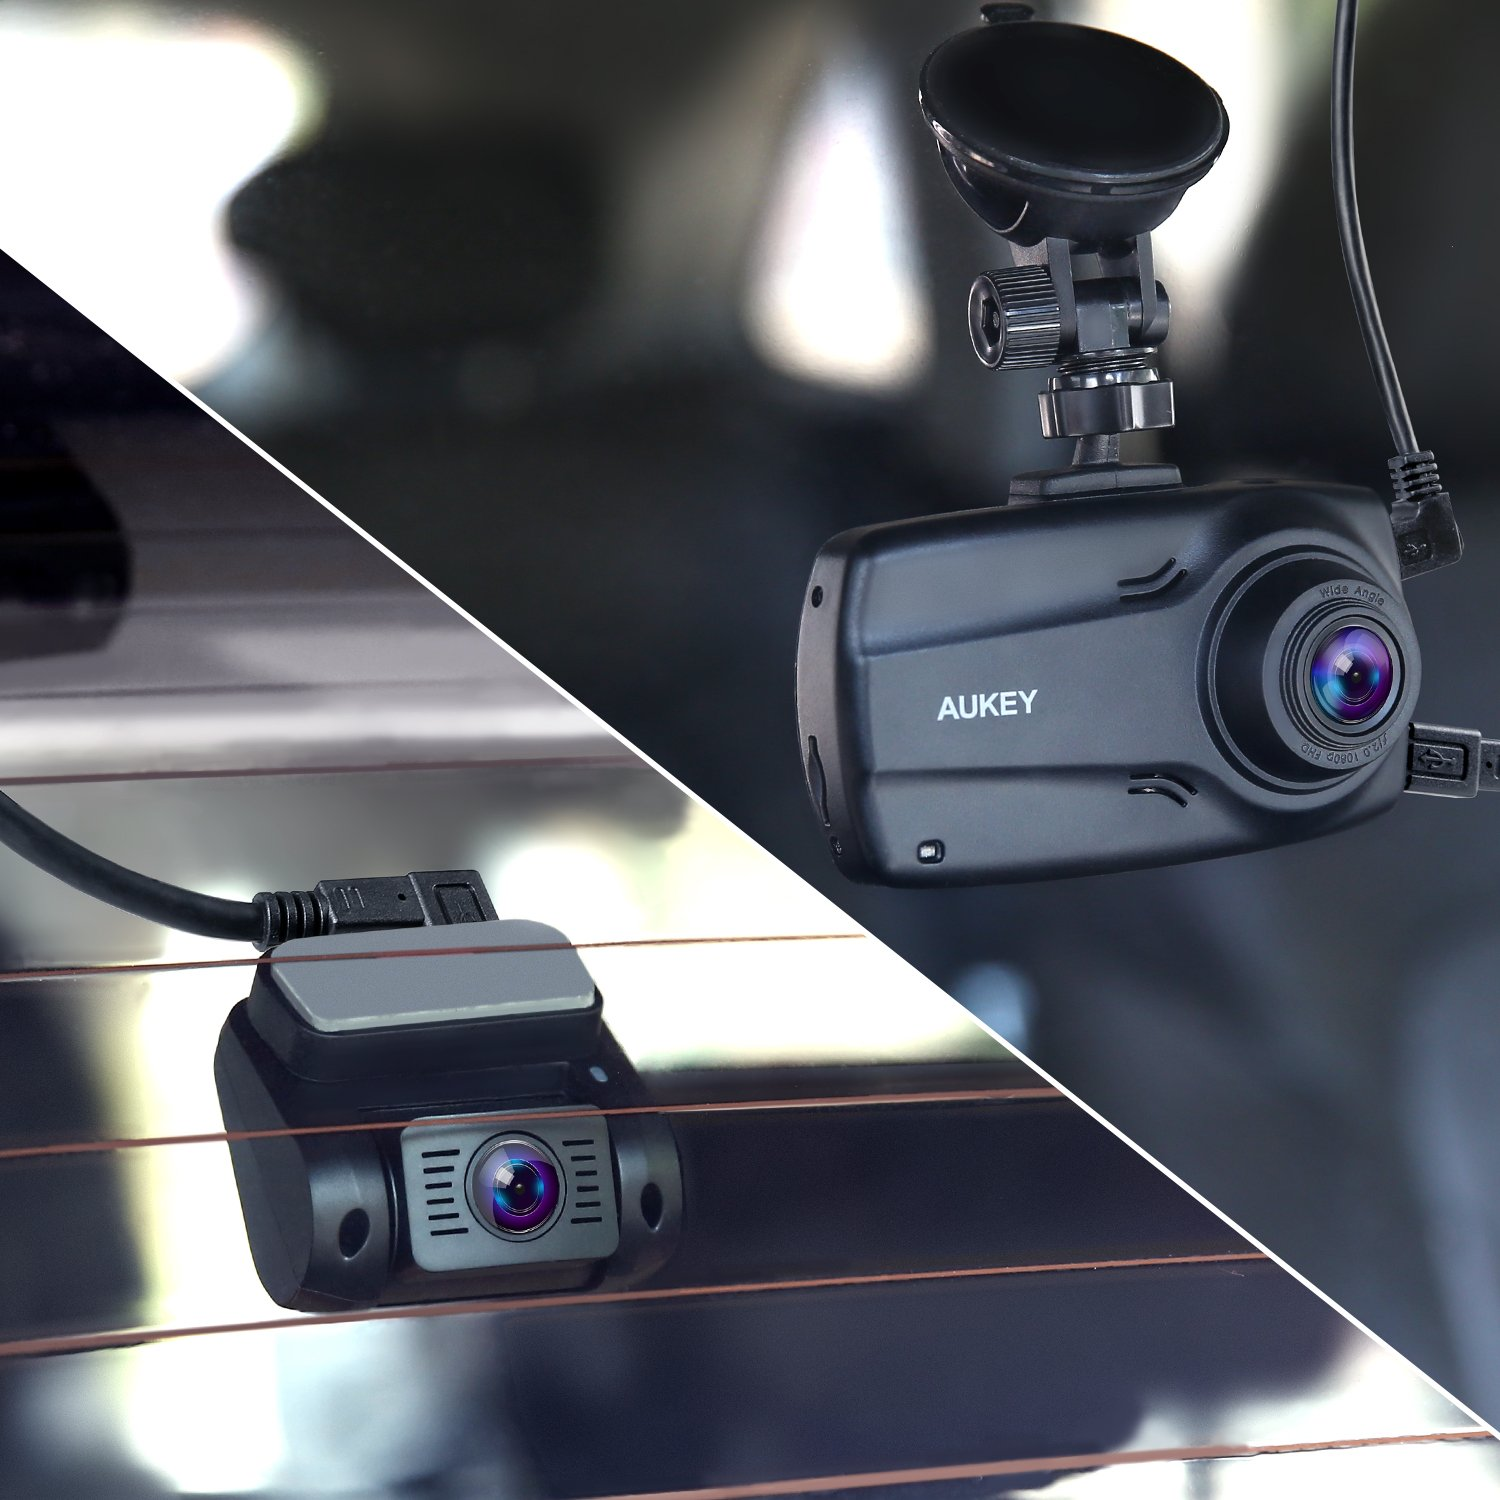 """AUKEY 1080p Dual Dash Cams with 2.7"""" Screen, Full HD Front and Rear Camera, 6-Lane 170° Wide-Angle Lens, G-Sensor, and Dual-Port Car Charger by AUKEY (Image #7)"""